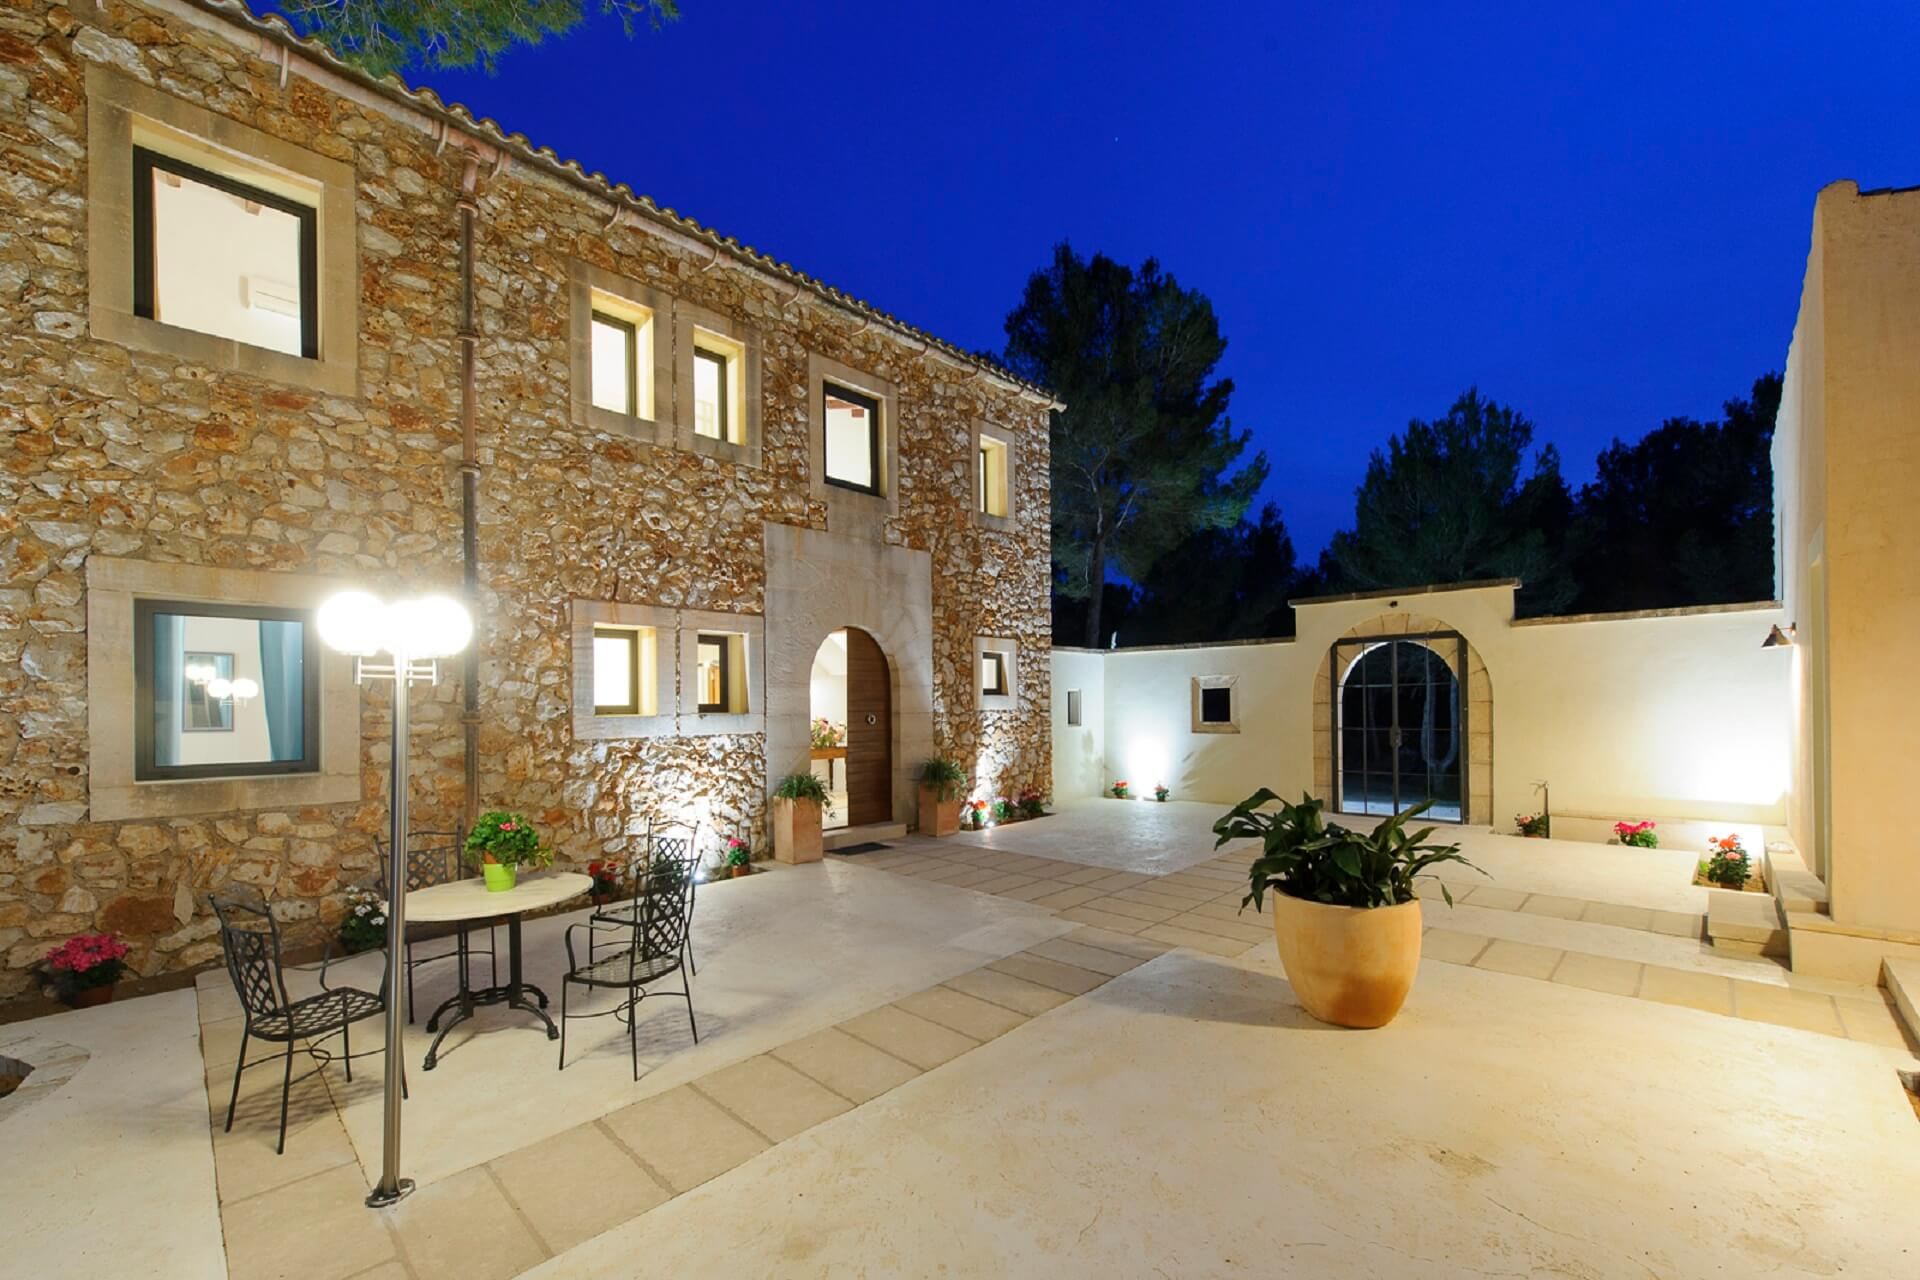 Villa Pins mit Patio